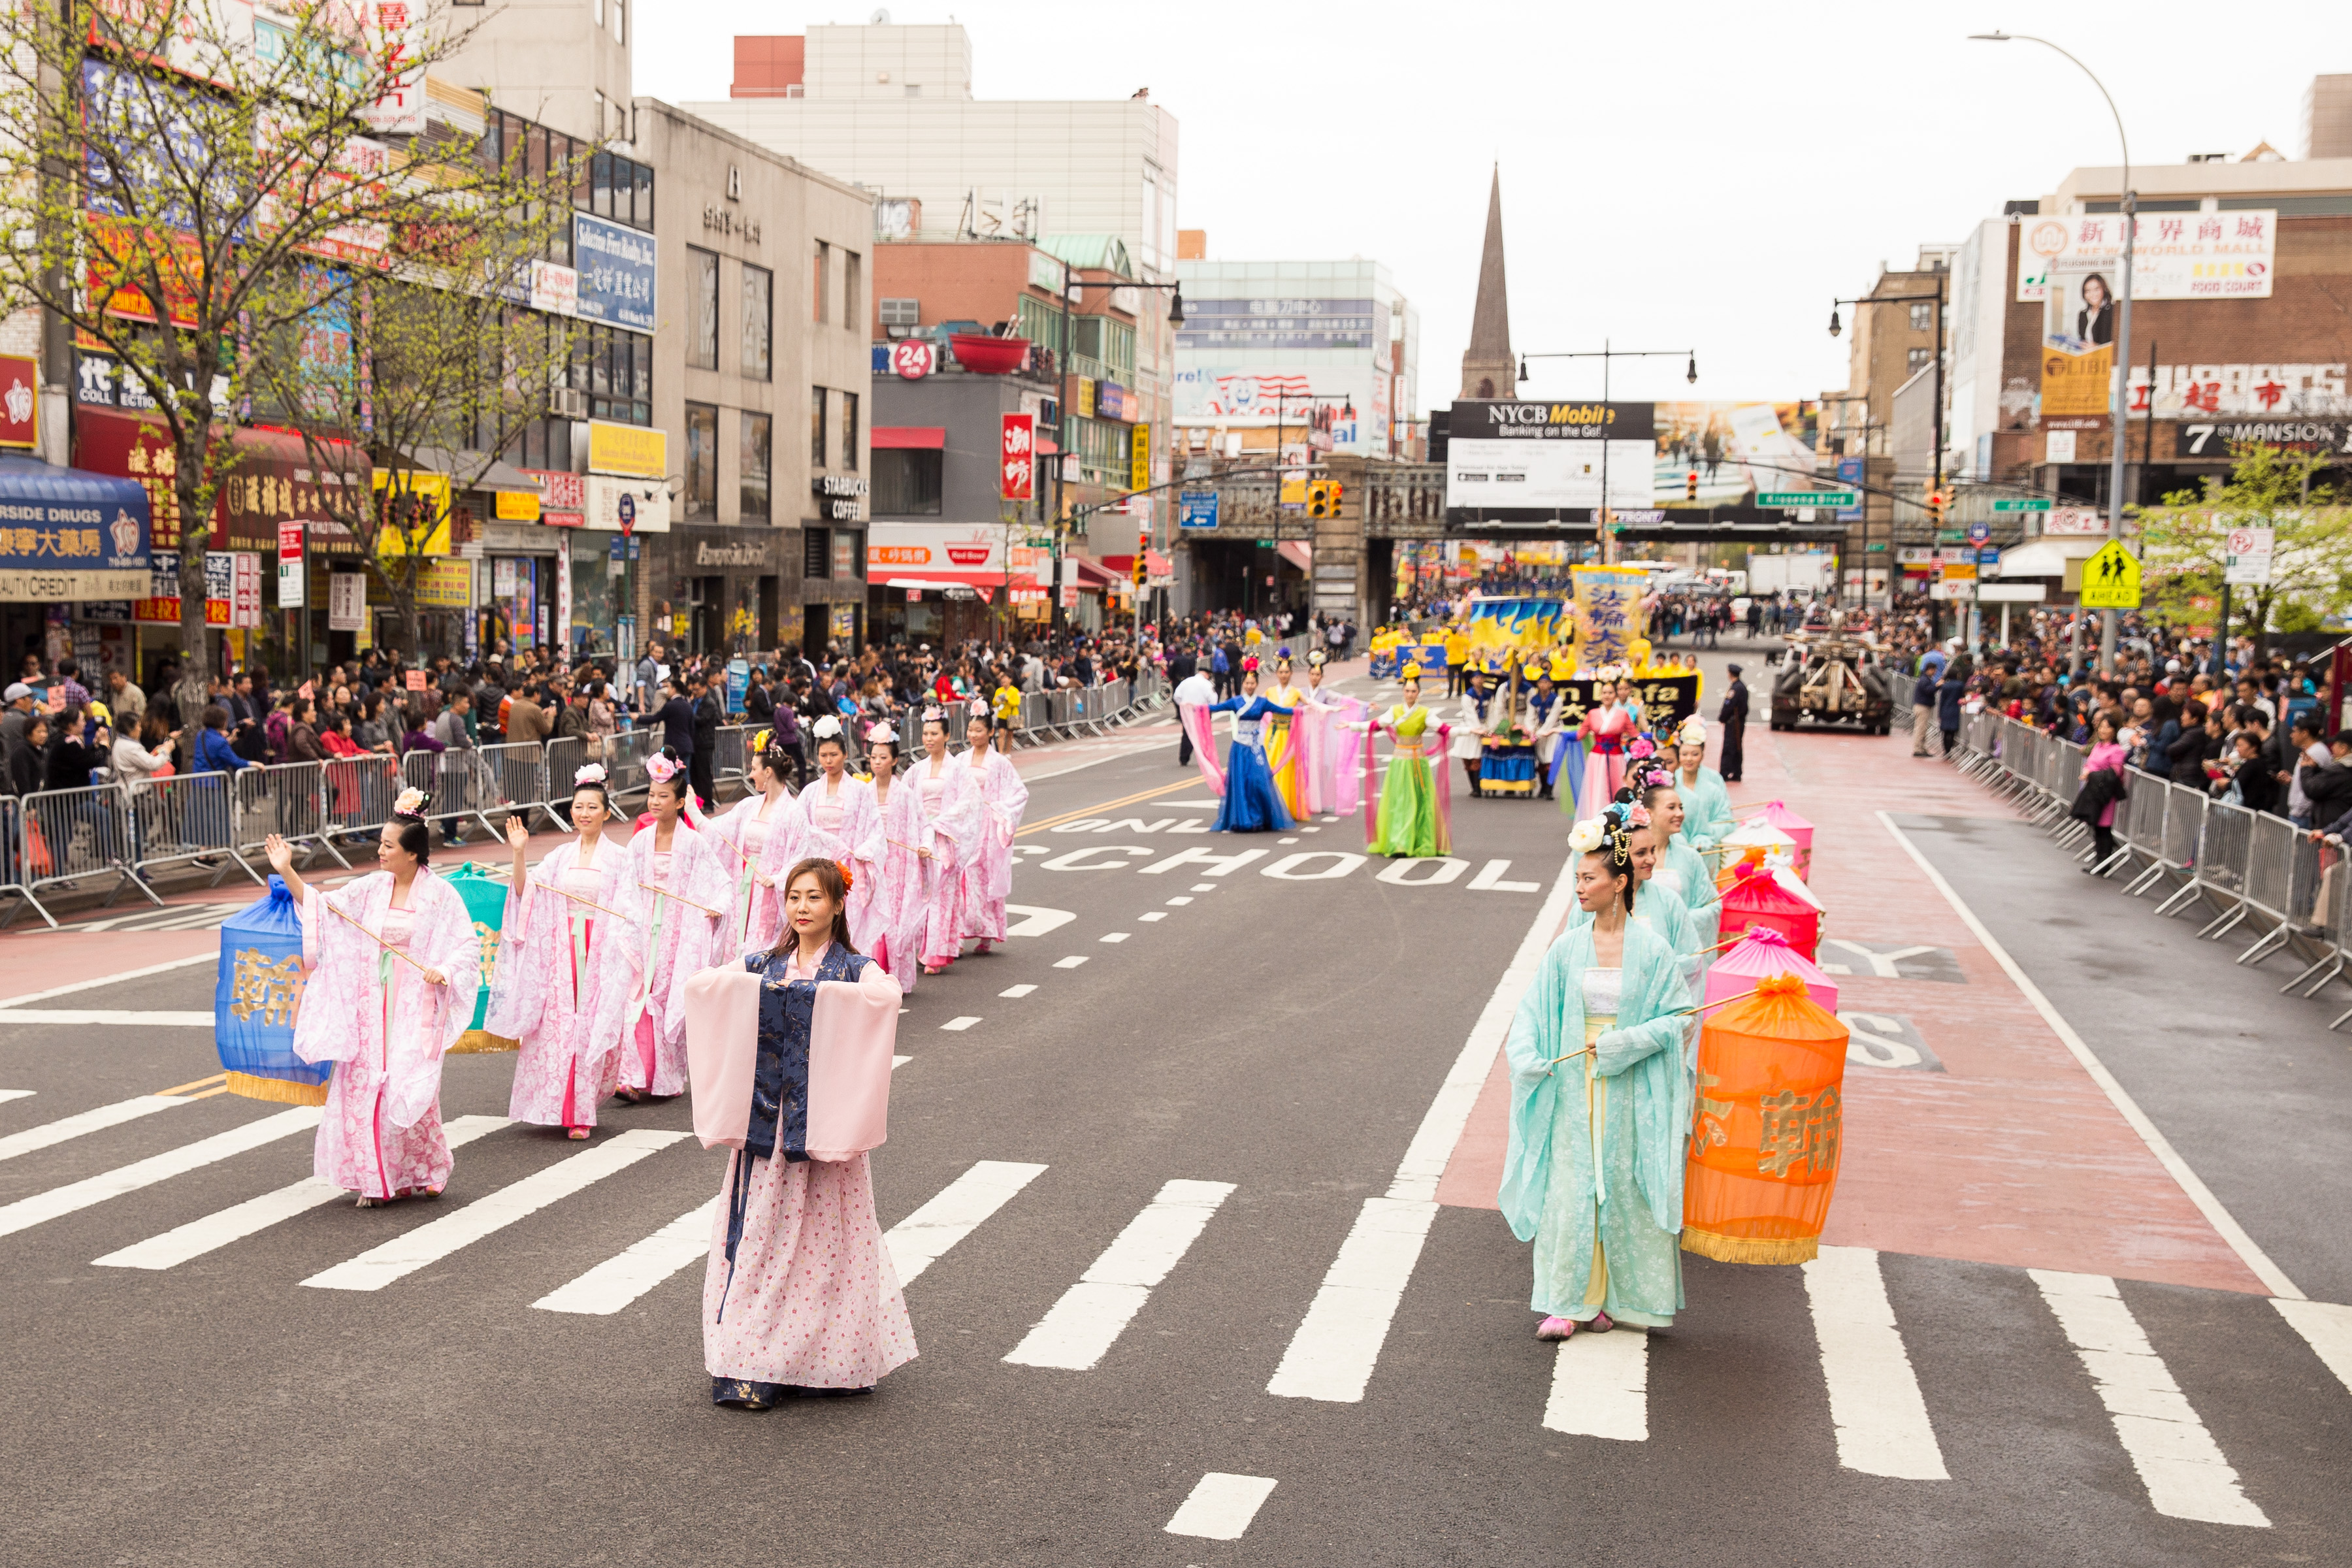 Falun Gong practitioners depict heavenly maidens in the Flushing parade. (Larry Dye/Epoch Times)